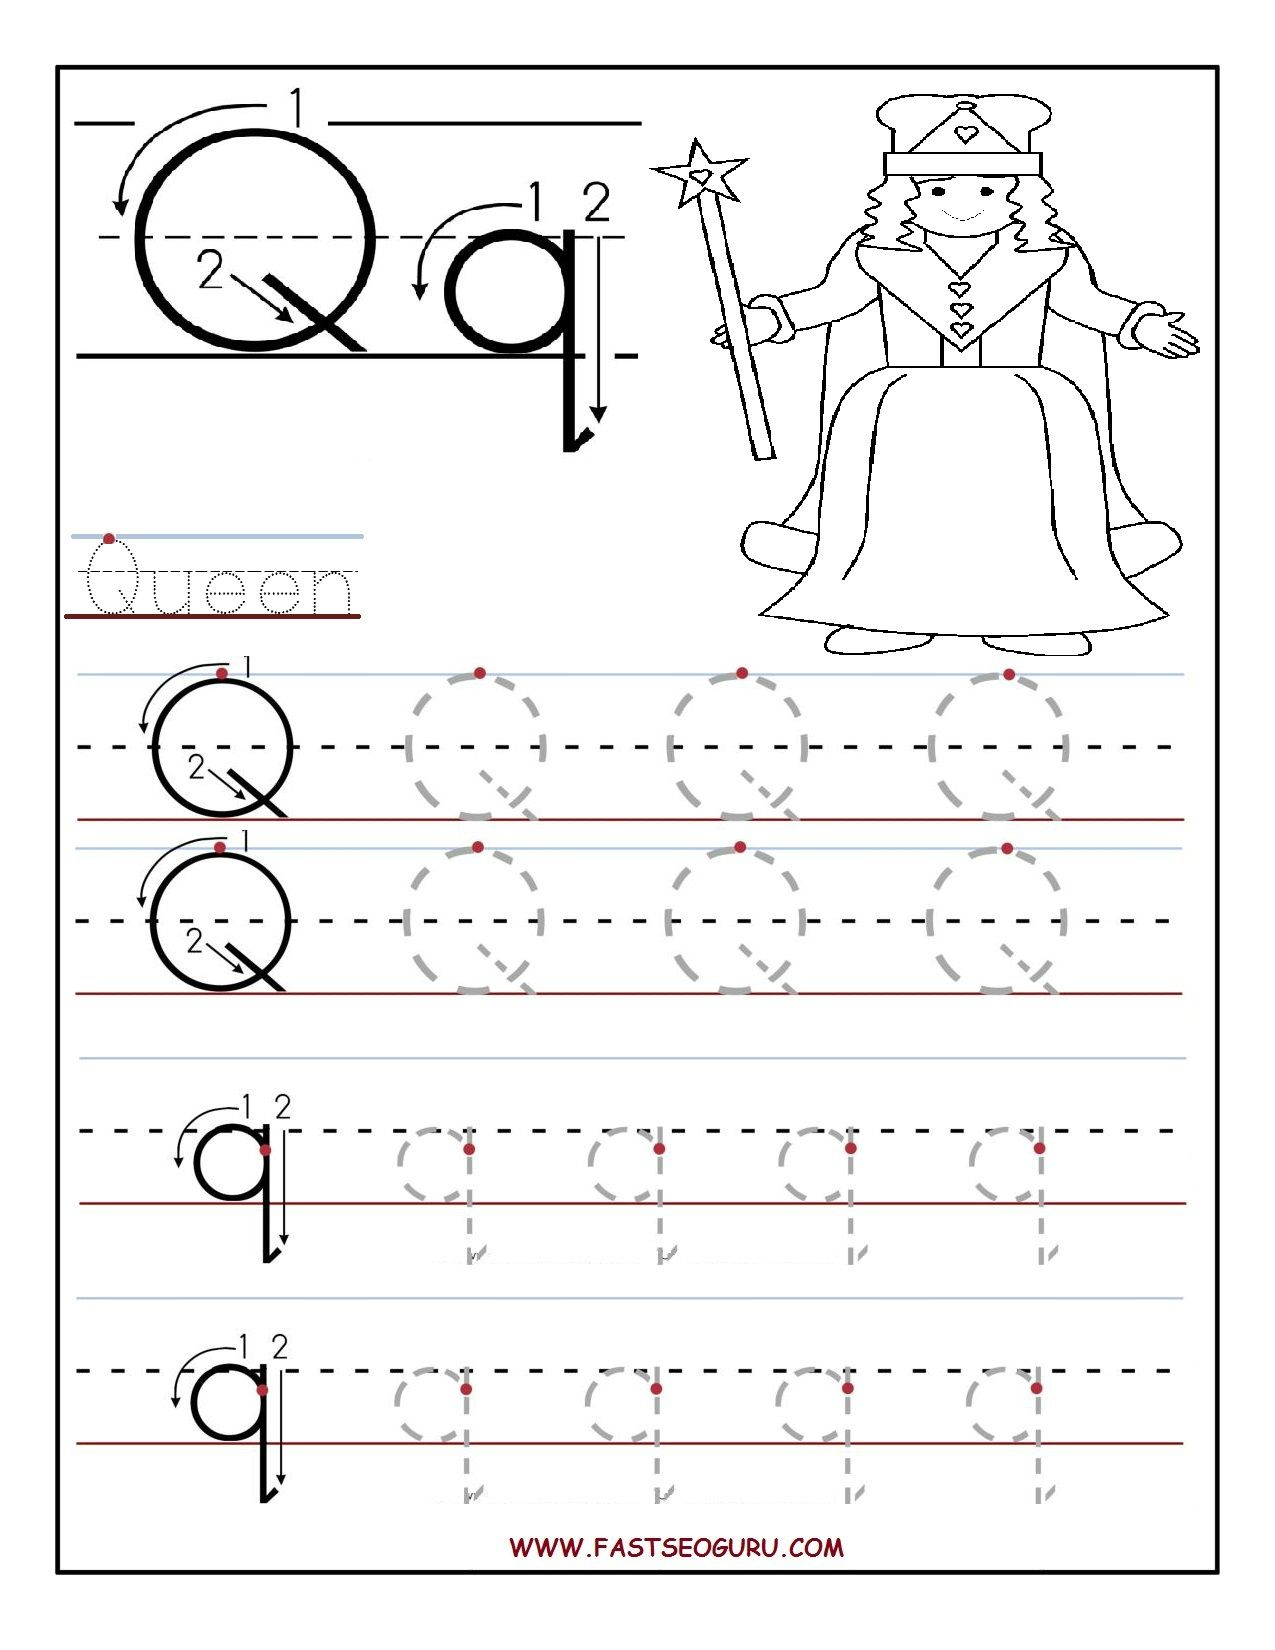 Worksheets Pre K Alphabet Tracing Worksheets printable letter q tracing worksheets for preschool word work preschool